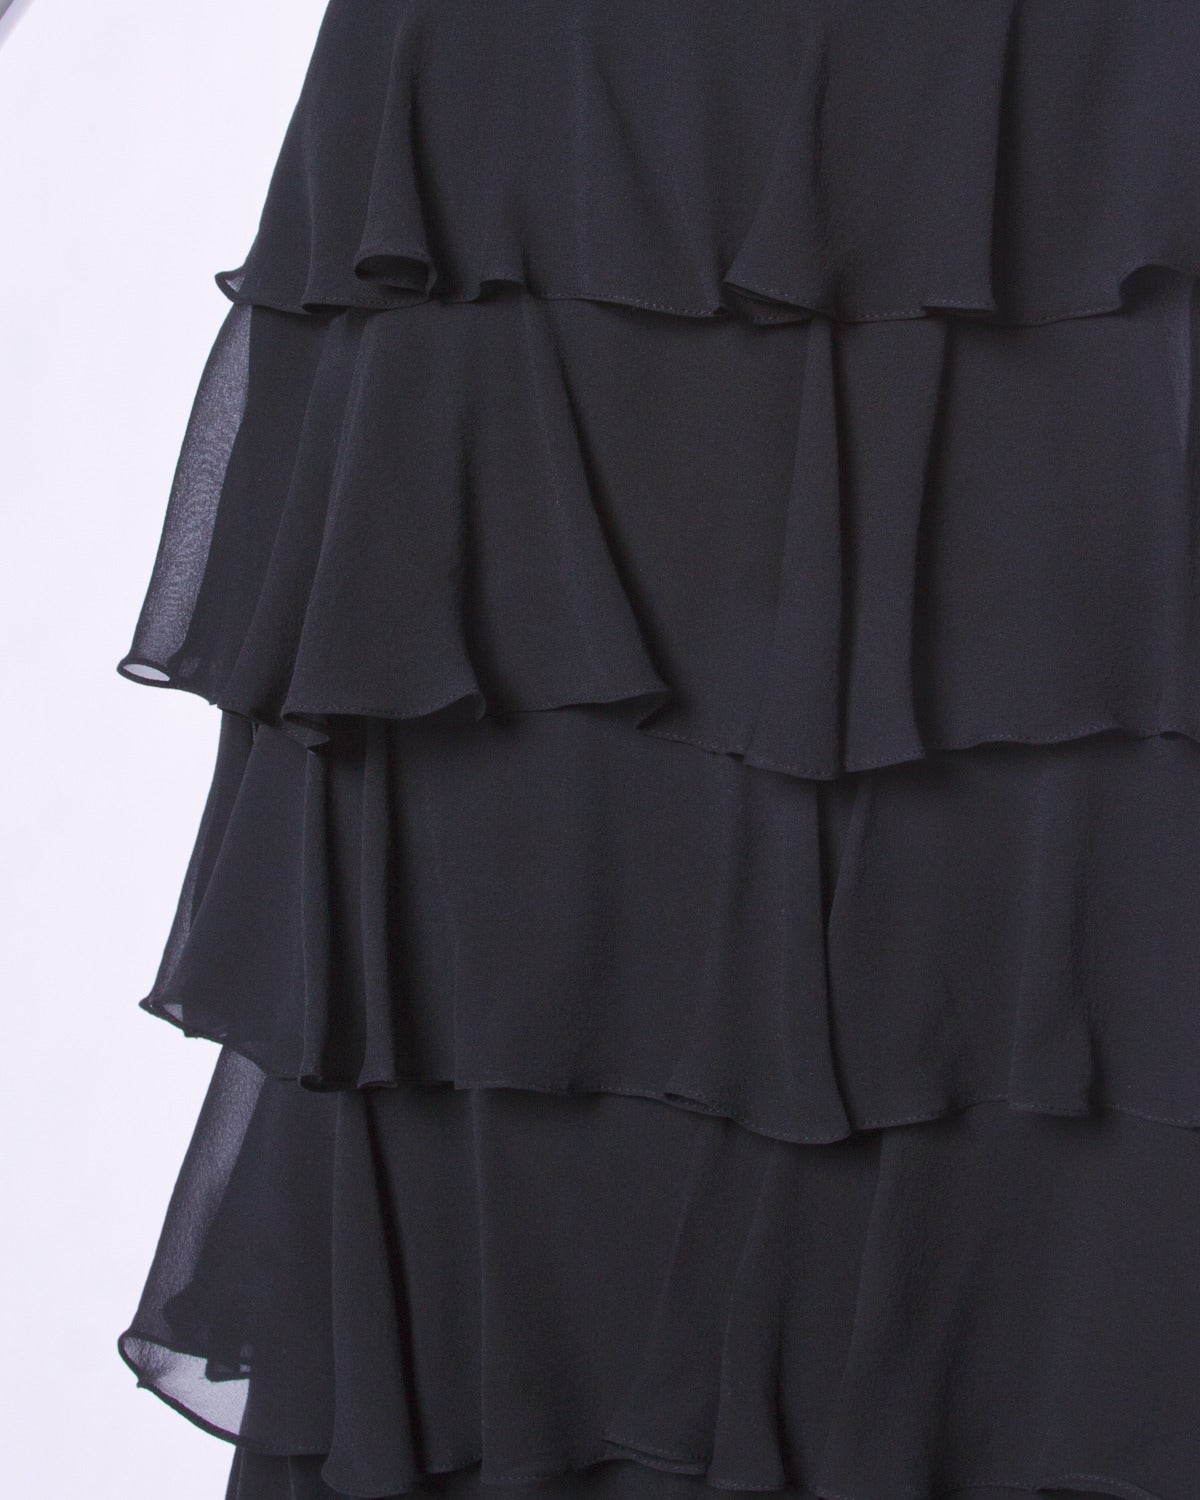 Lillie Rubin Vintage Black Tiered Silk Chiffon Strapless Evening Gown For Sale 1